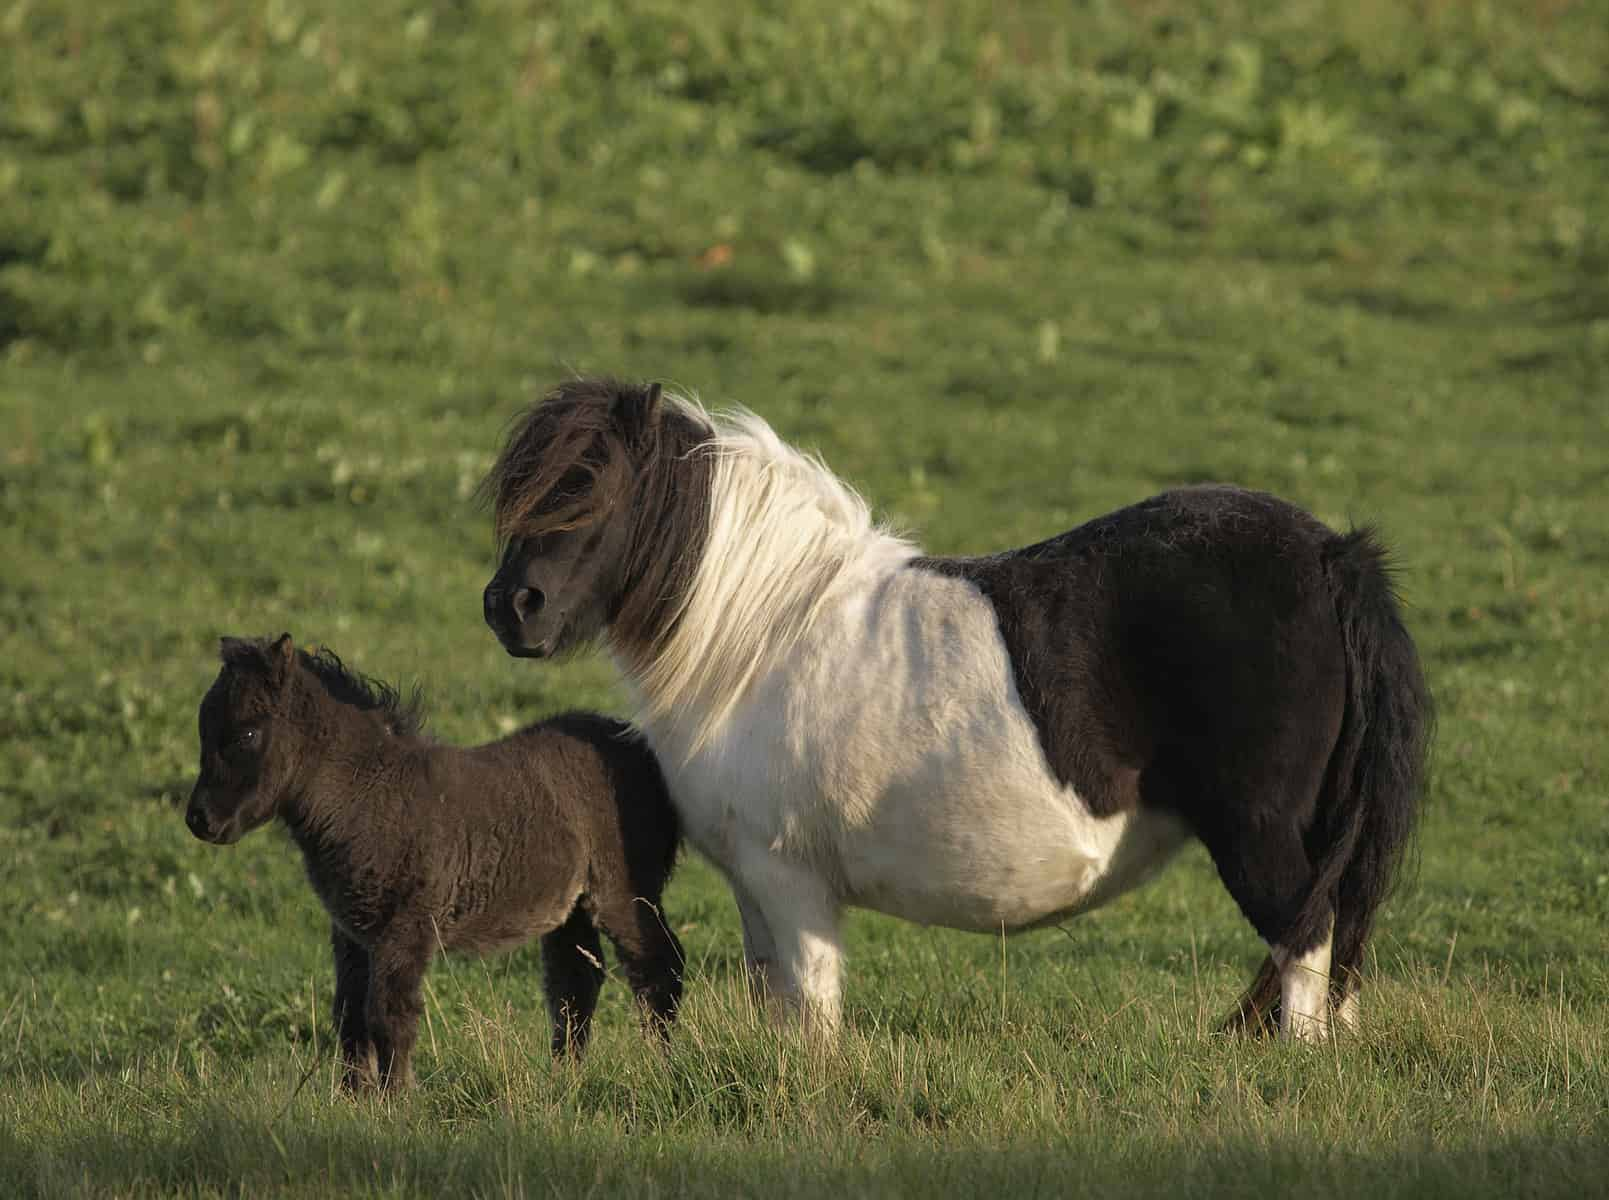 a mini horse and a baby mini horse stand together in a field.